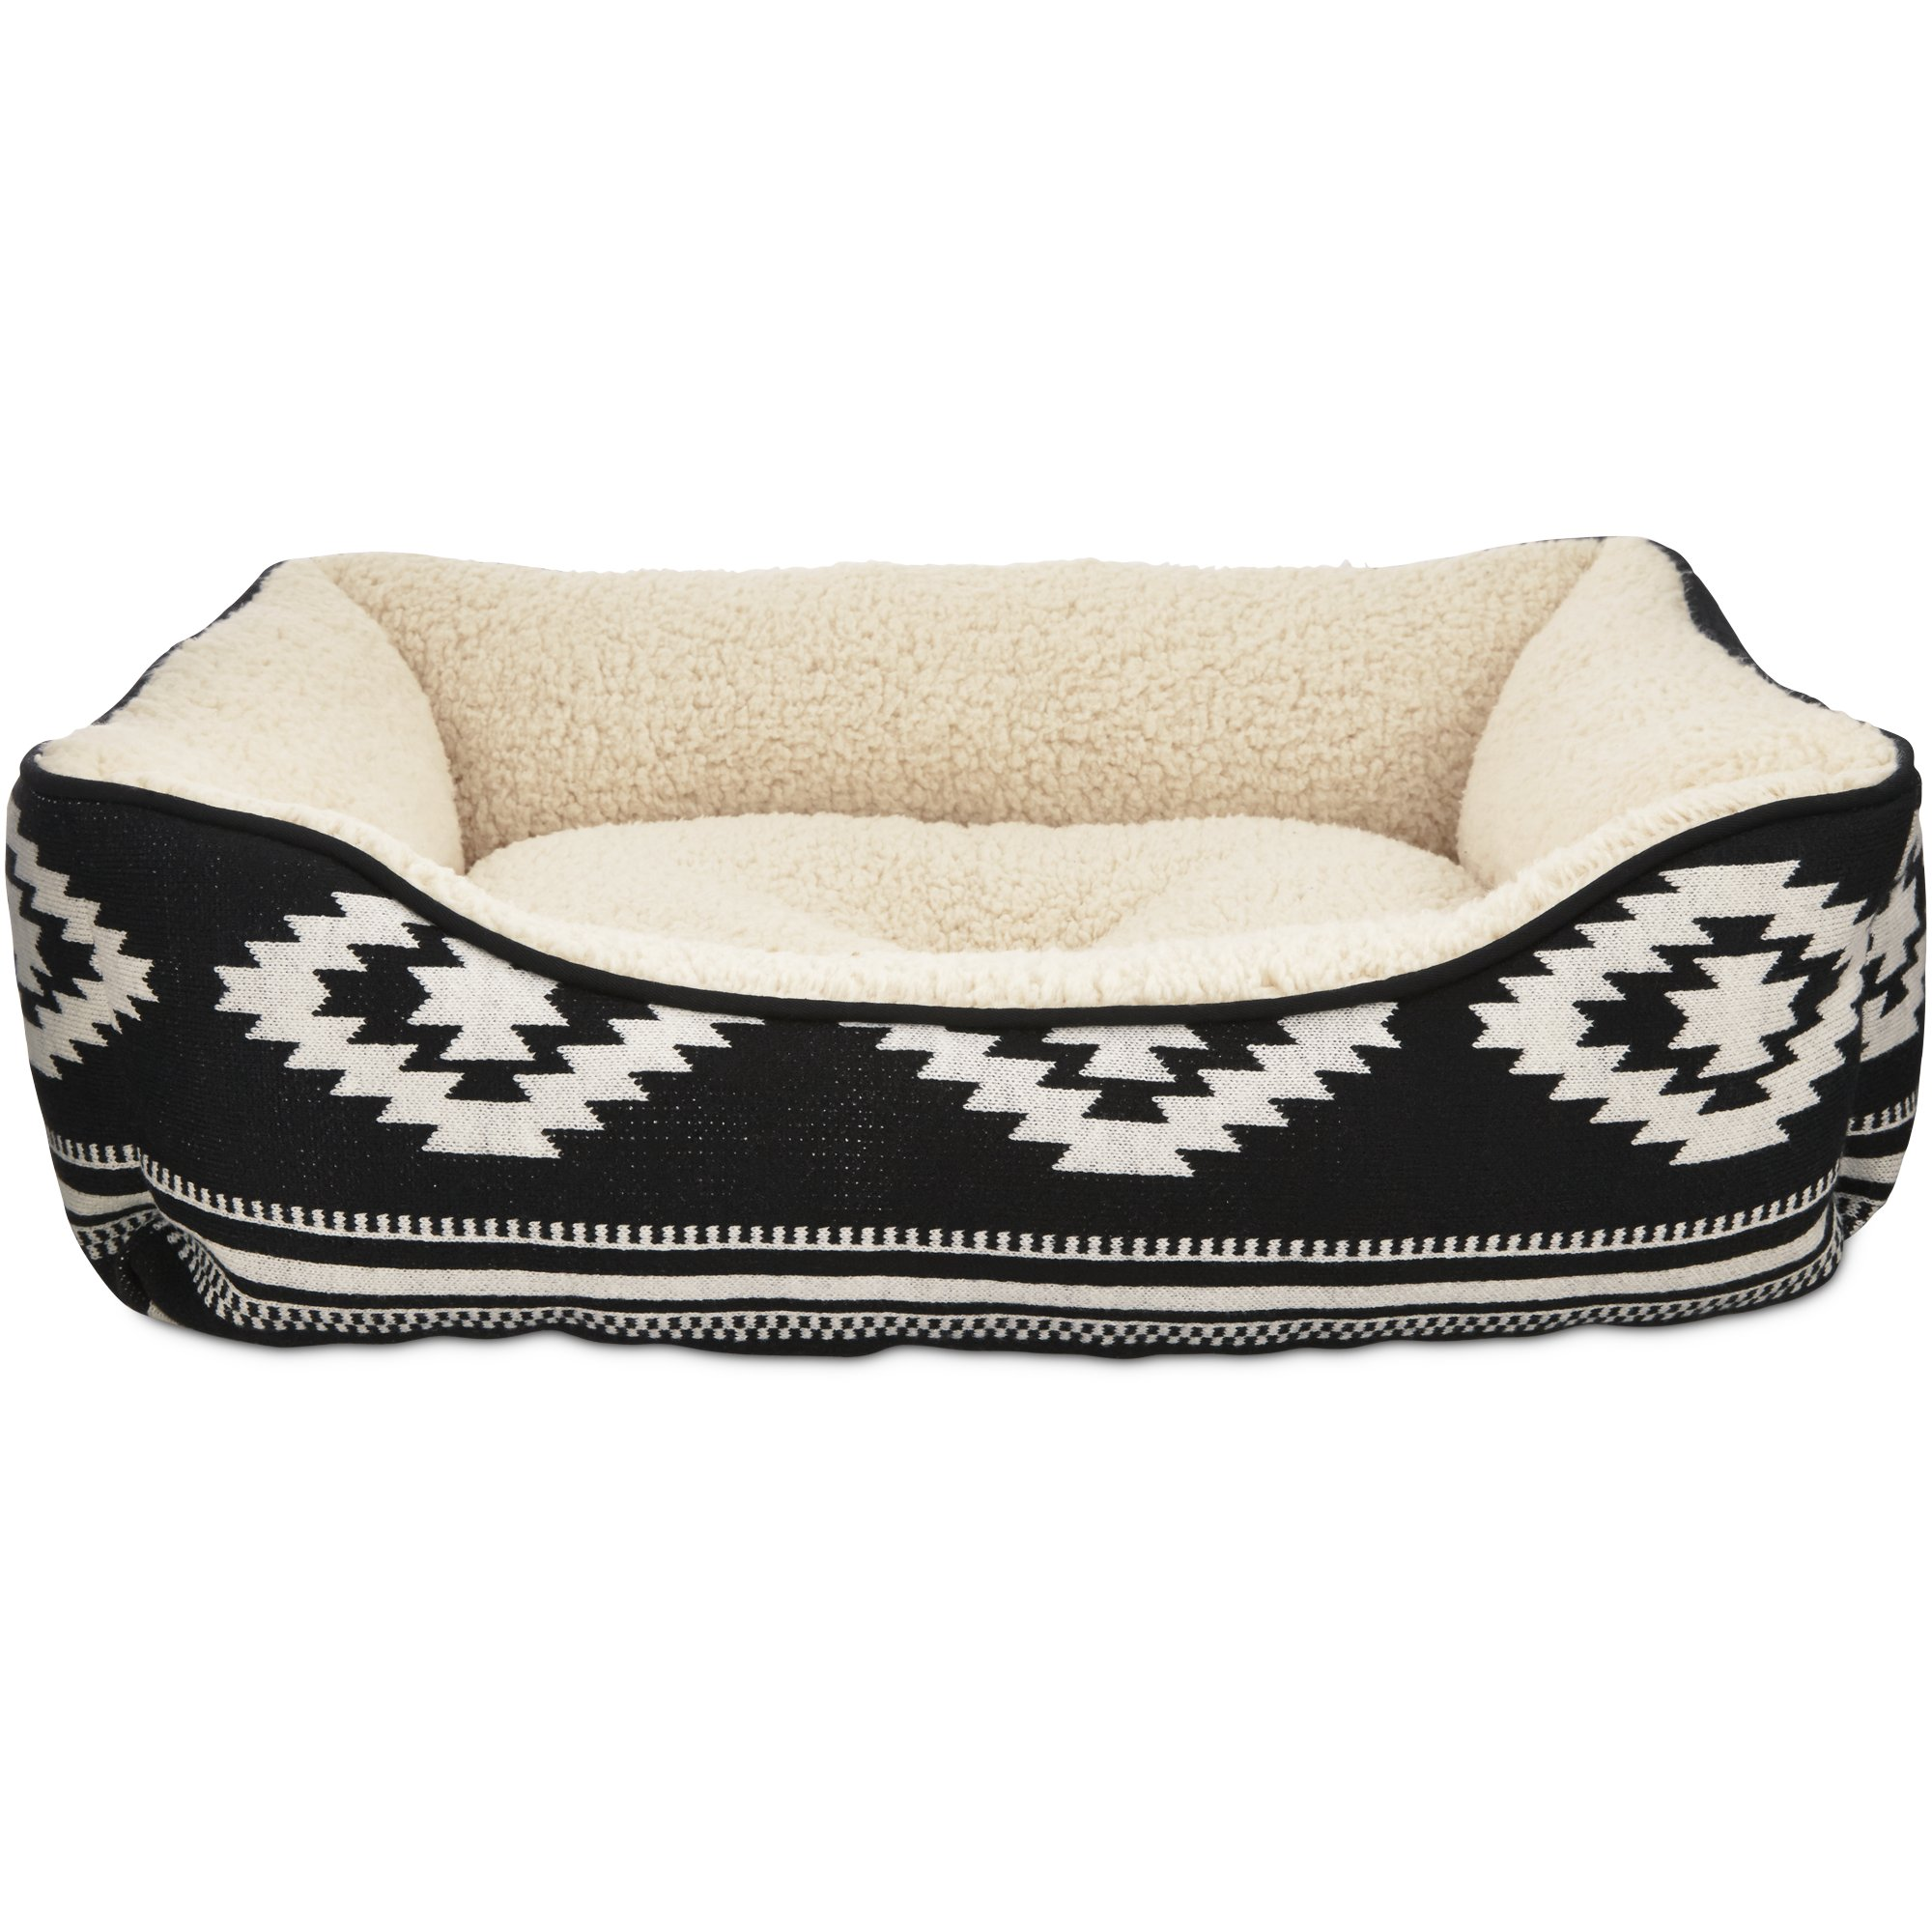 beds off to dog petco at up bed